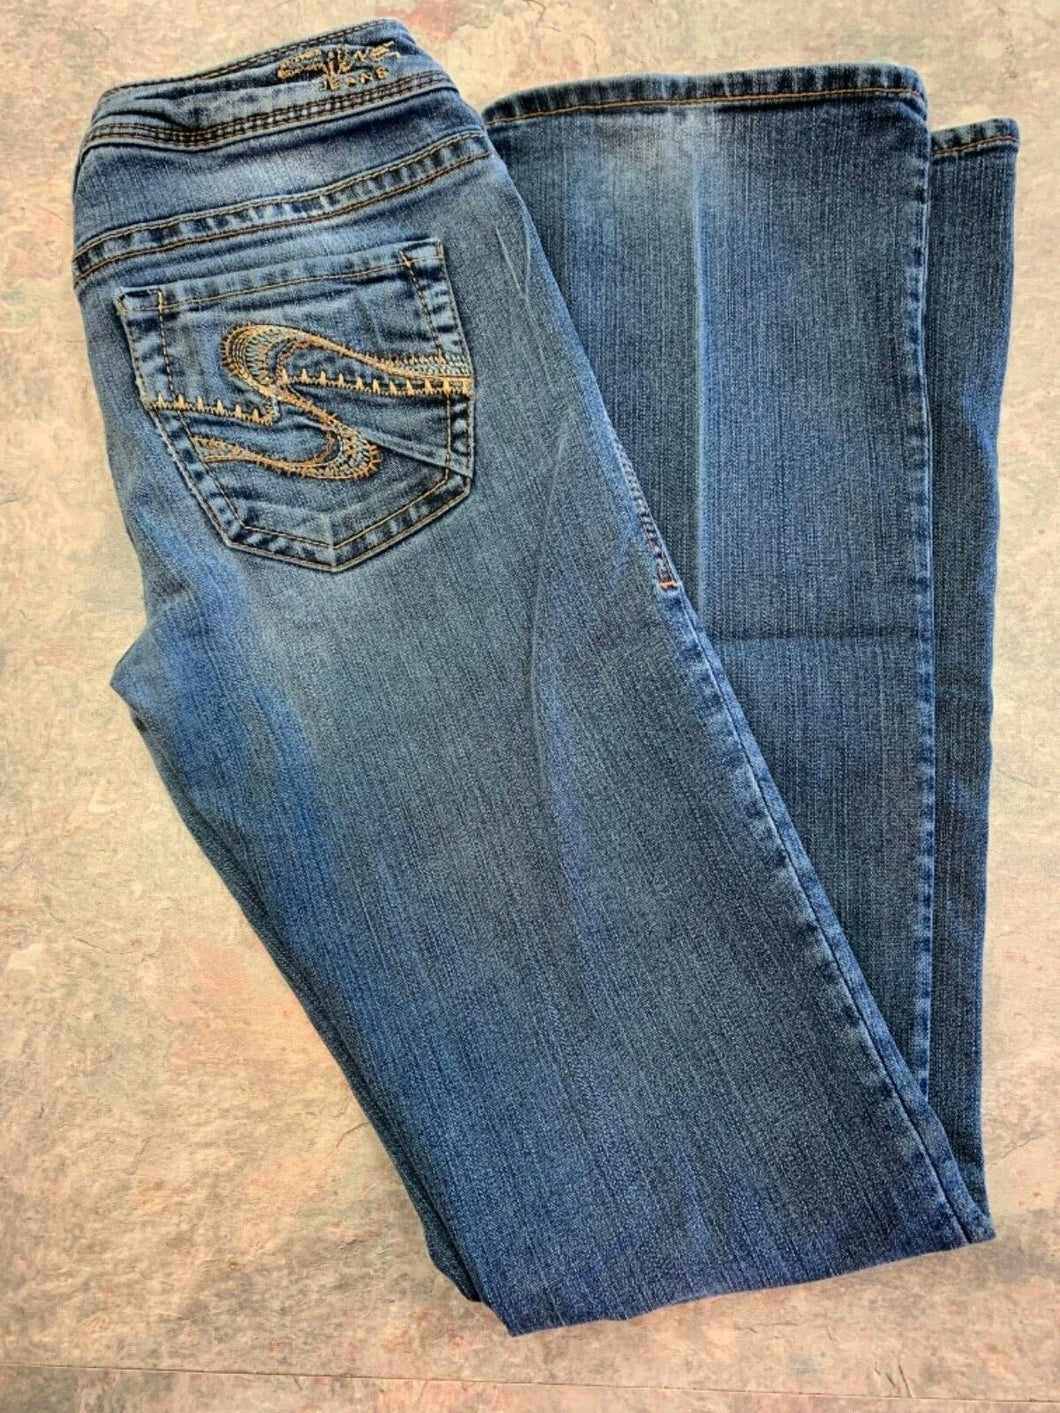 Silver Western Glove Works Jeans Womens 26 Denim Blue Toni